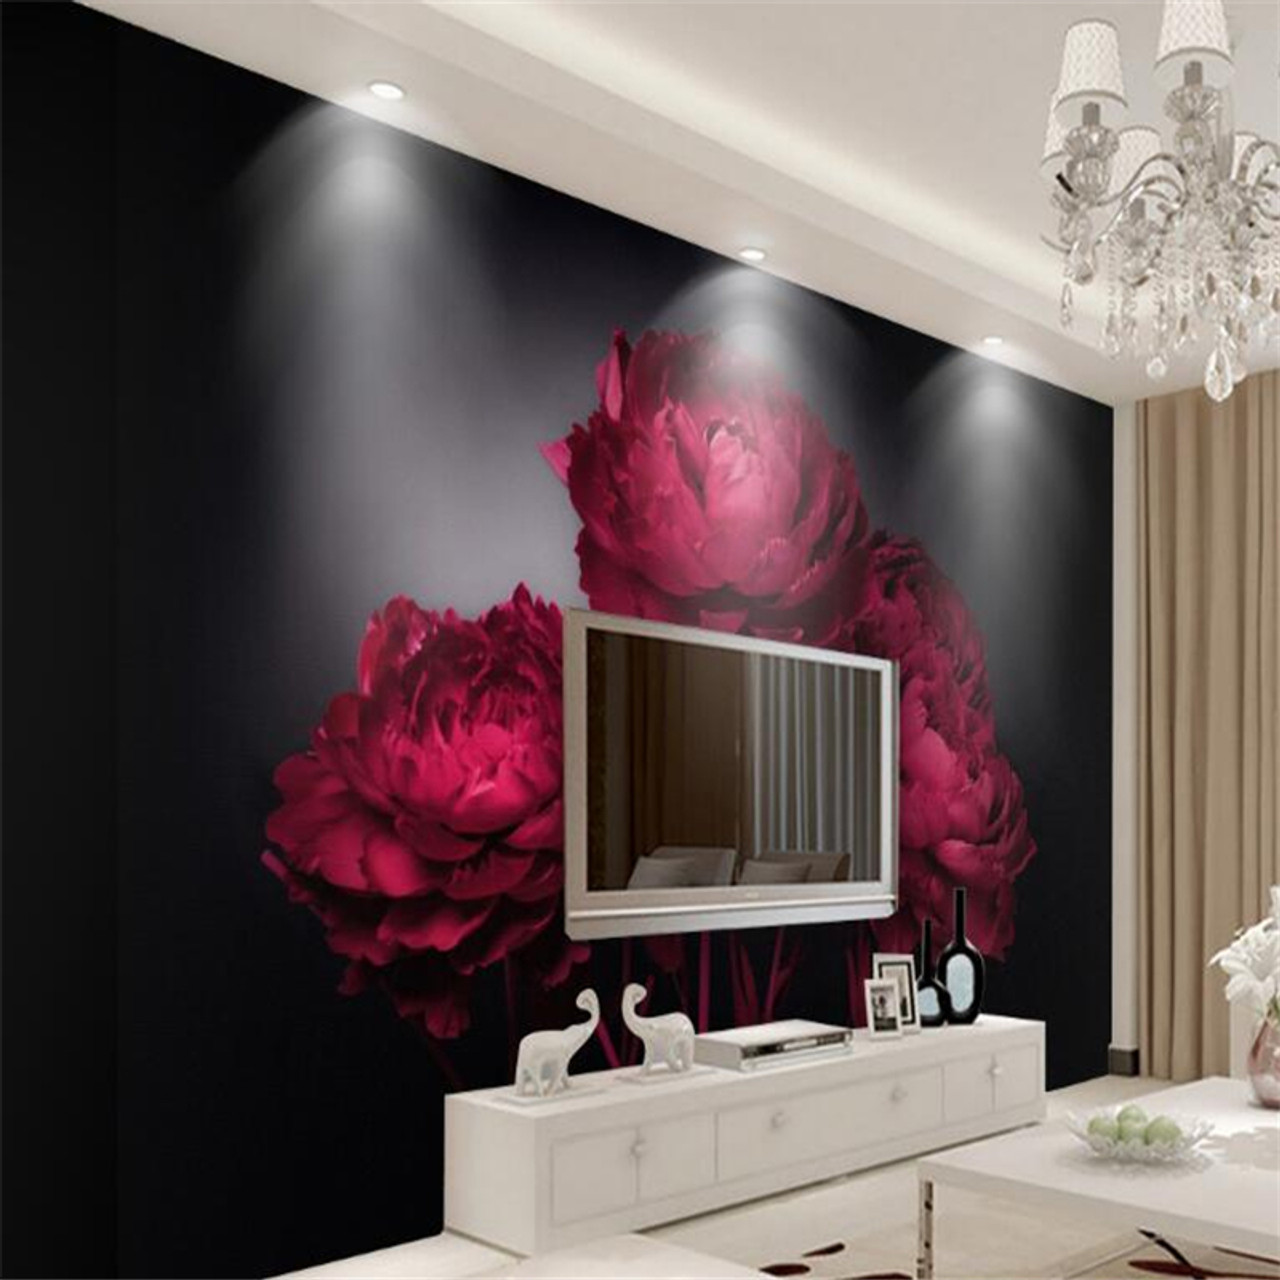 Beibehang 3D wallpaper romantic red roses TV background wall living room bedroom background mural photo wallpaper  95326.1549108353